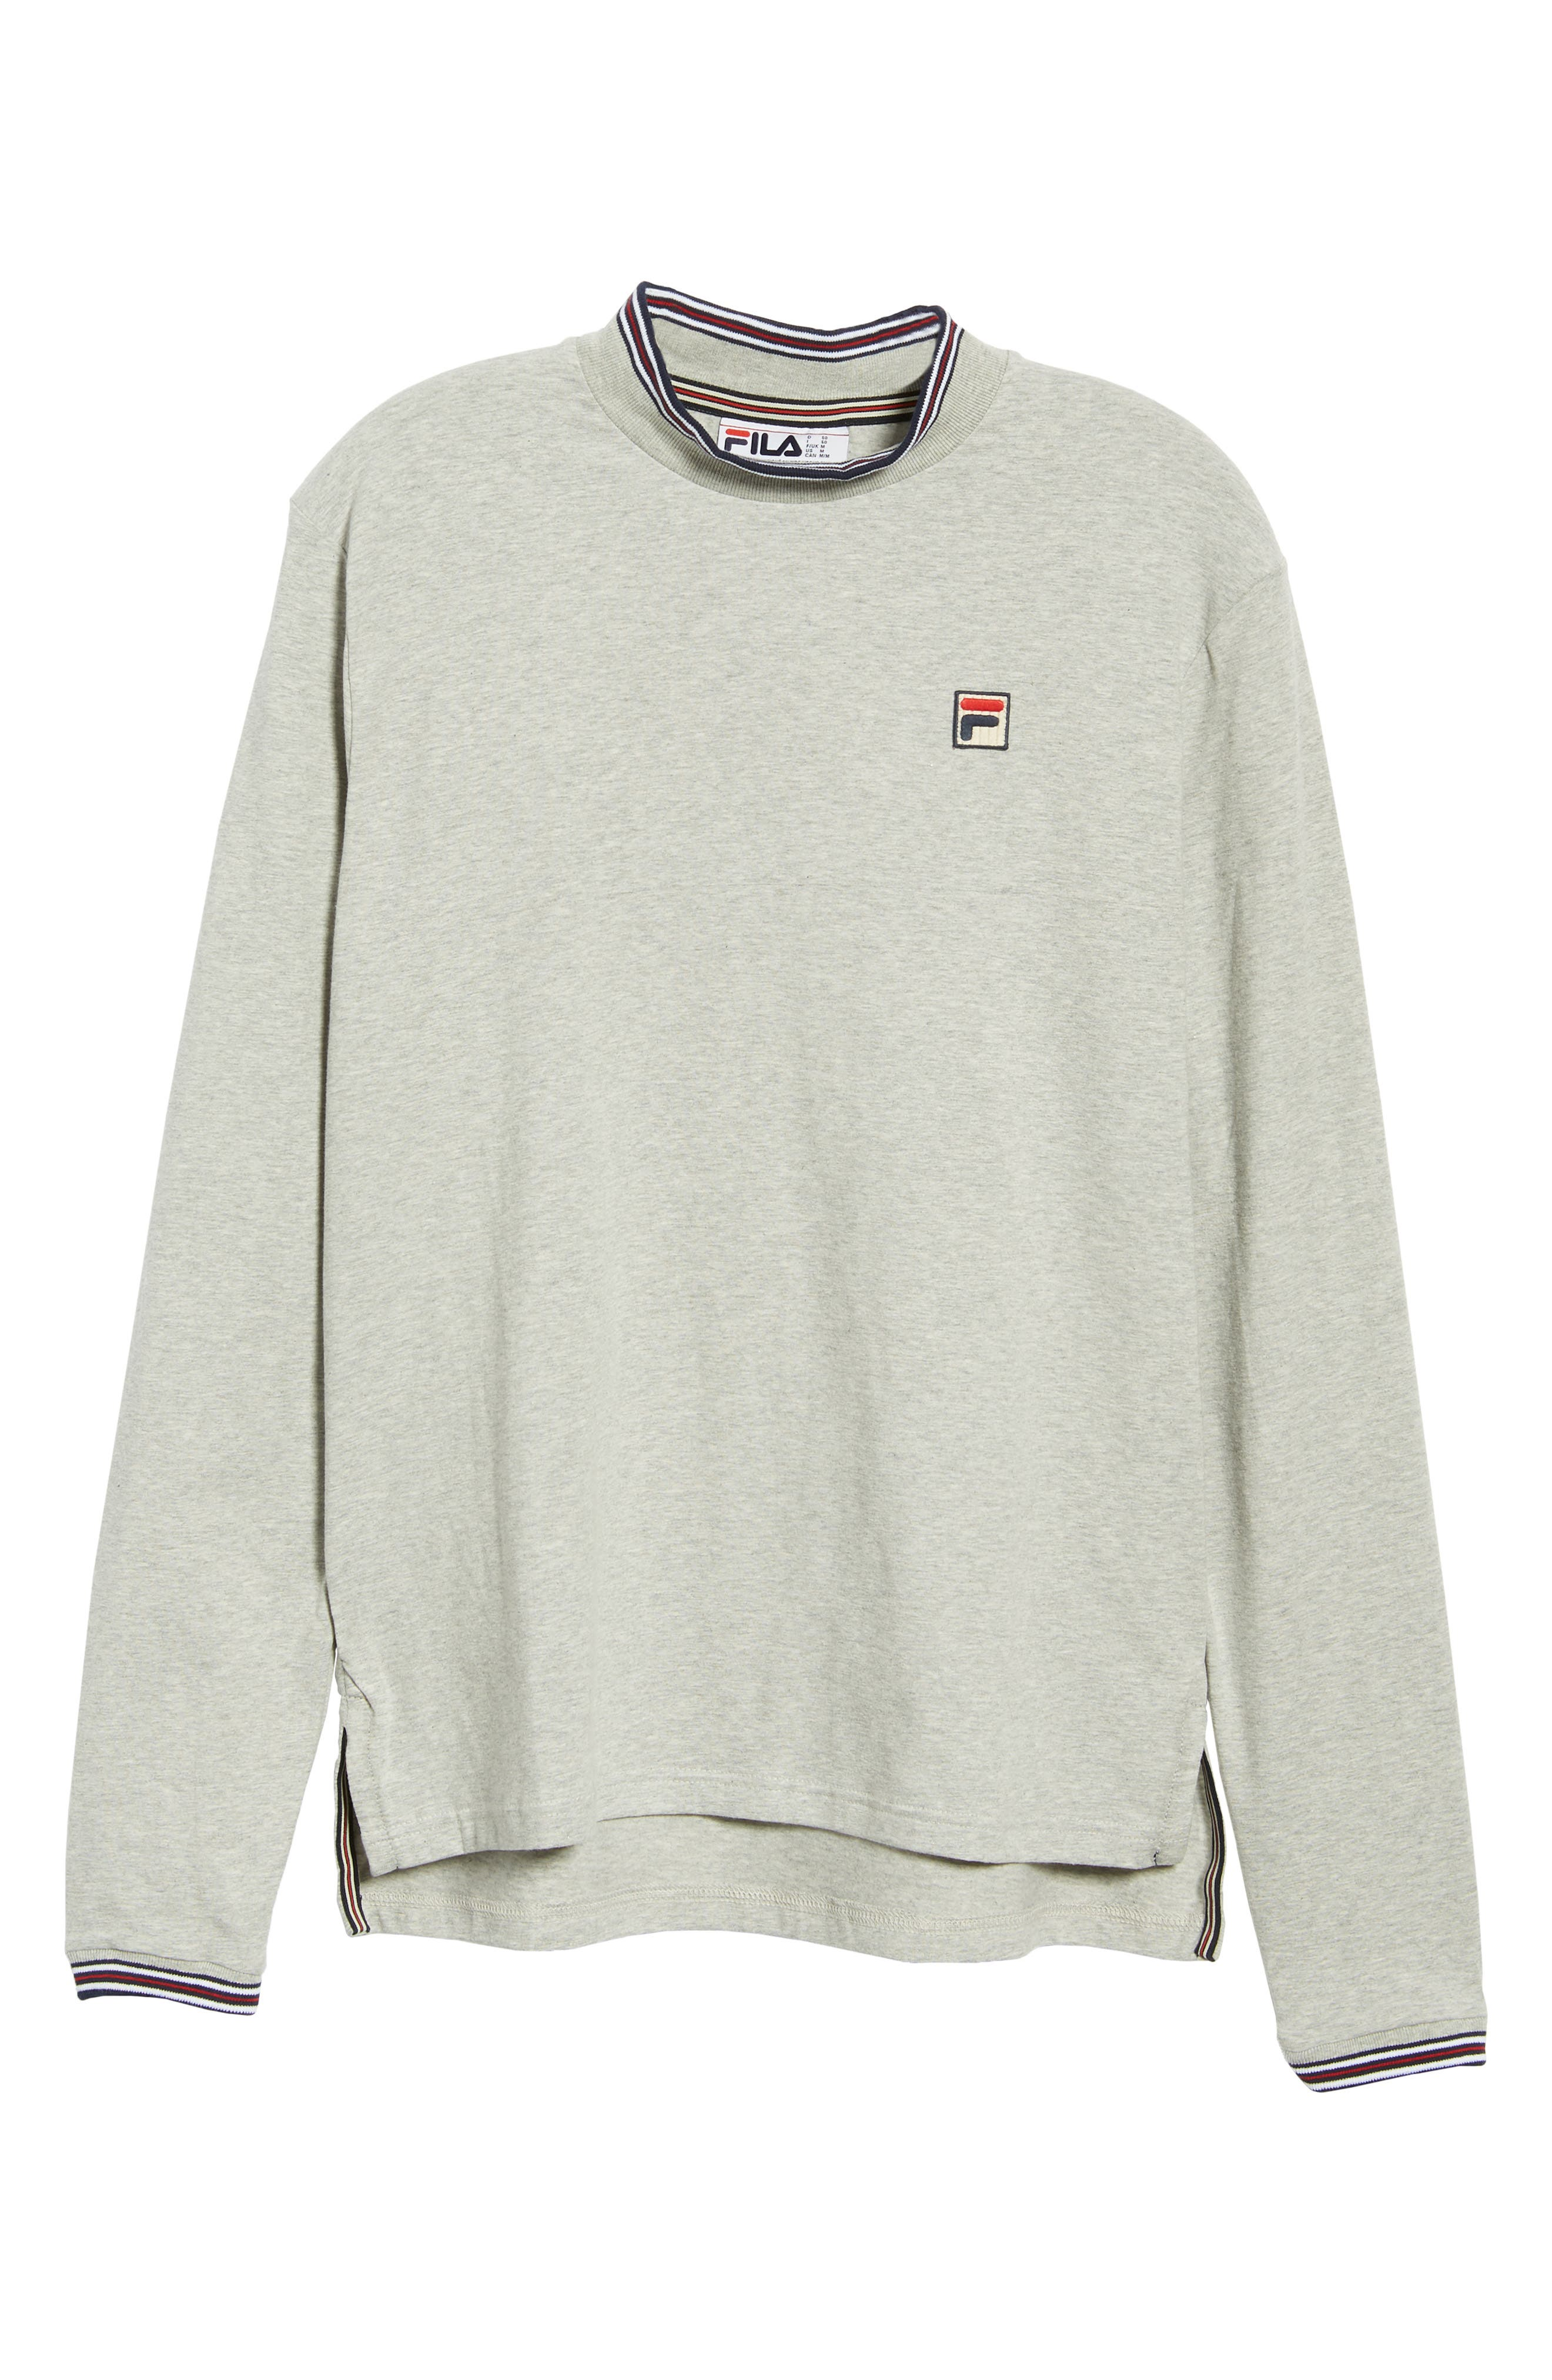 Quentin Mock Neck T-Shirt,                             Alternate thumbnail 6, color,                             LIGHT GREY